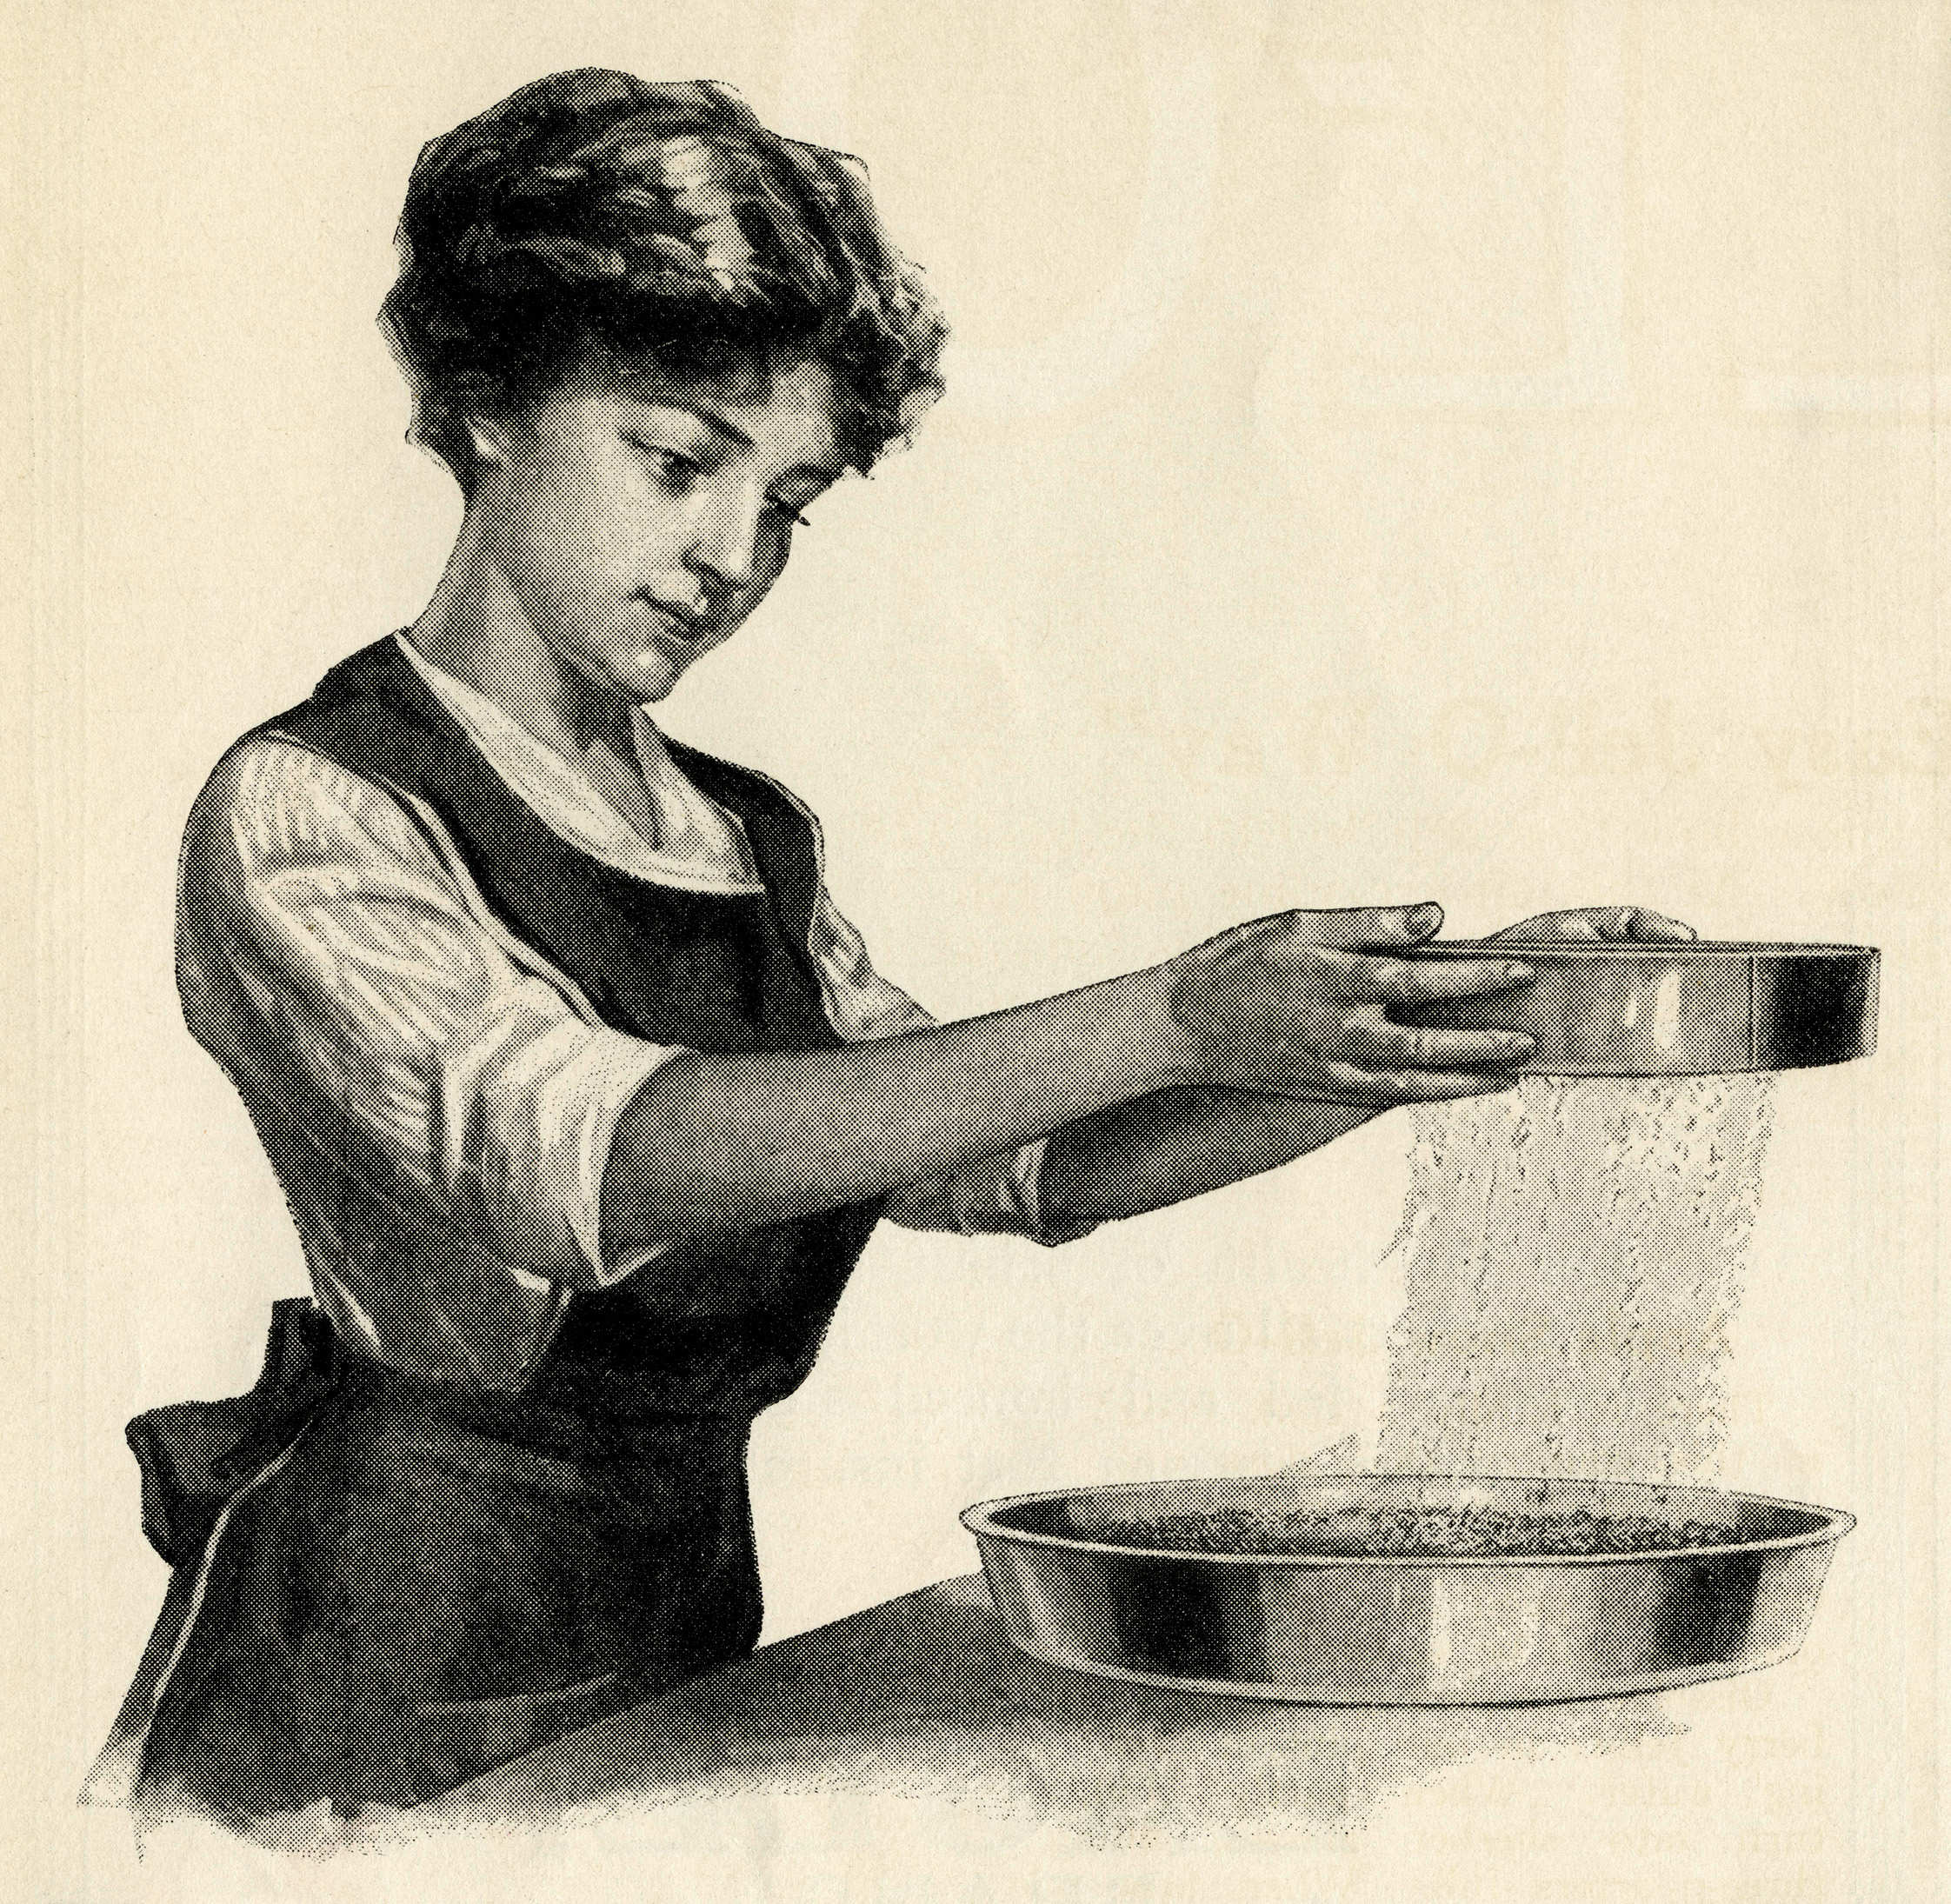 Retro Woman In Kitchen: Young Woman Cooking Clip Art